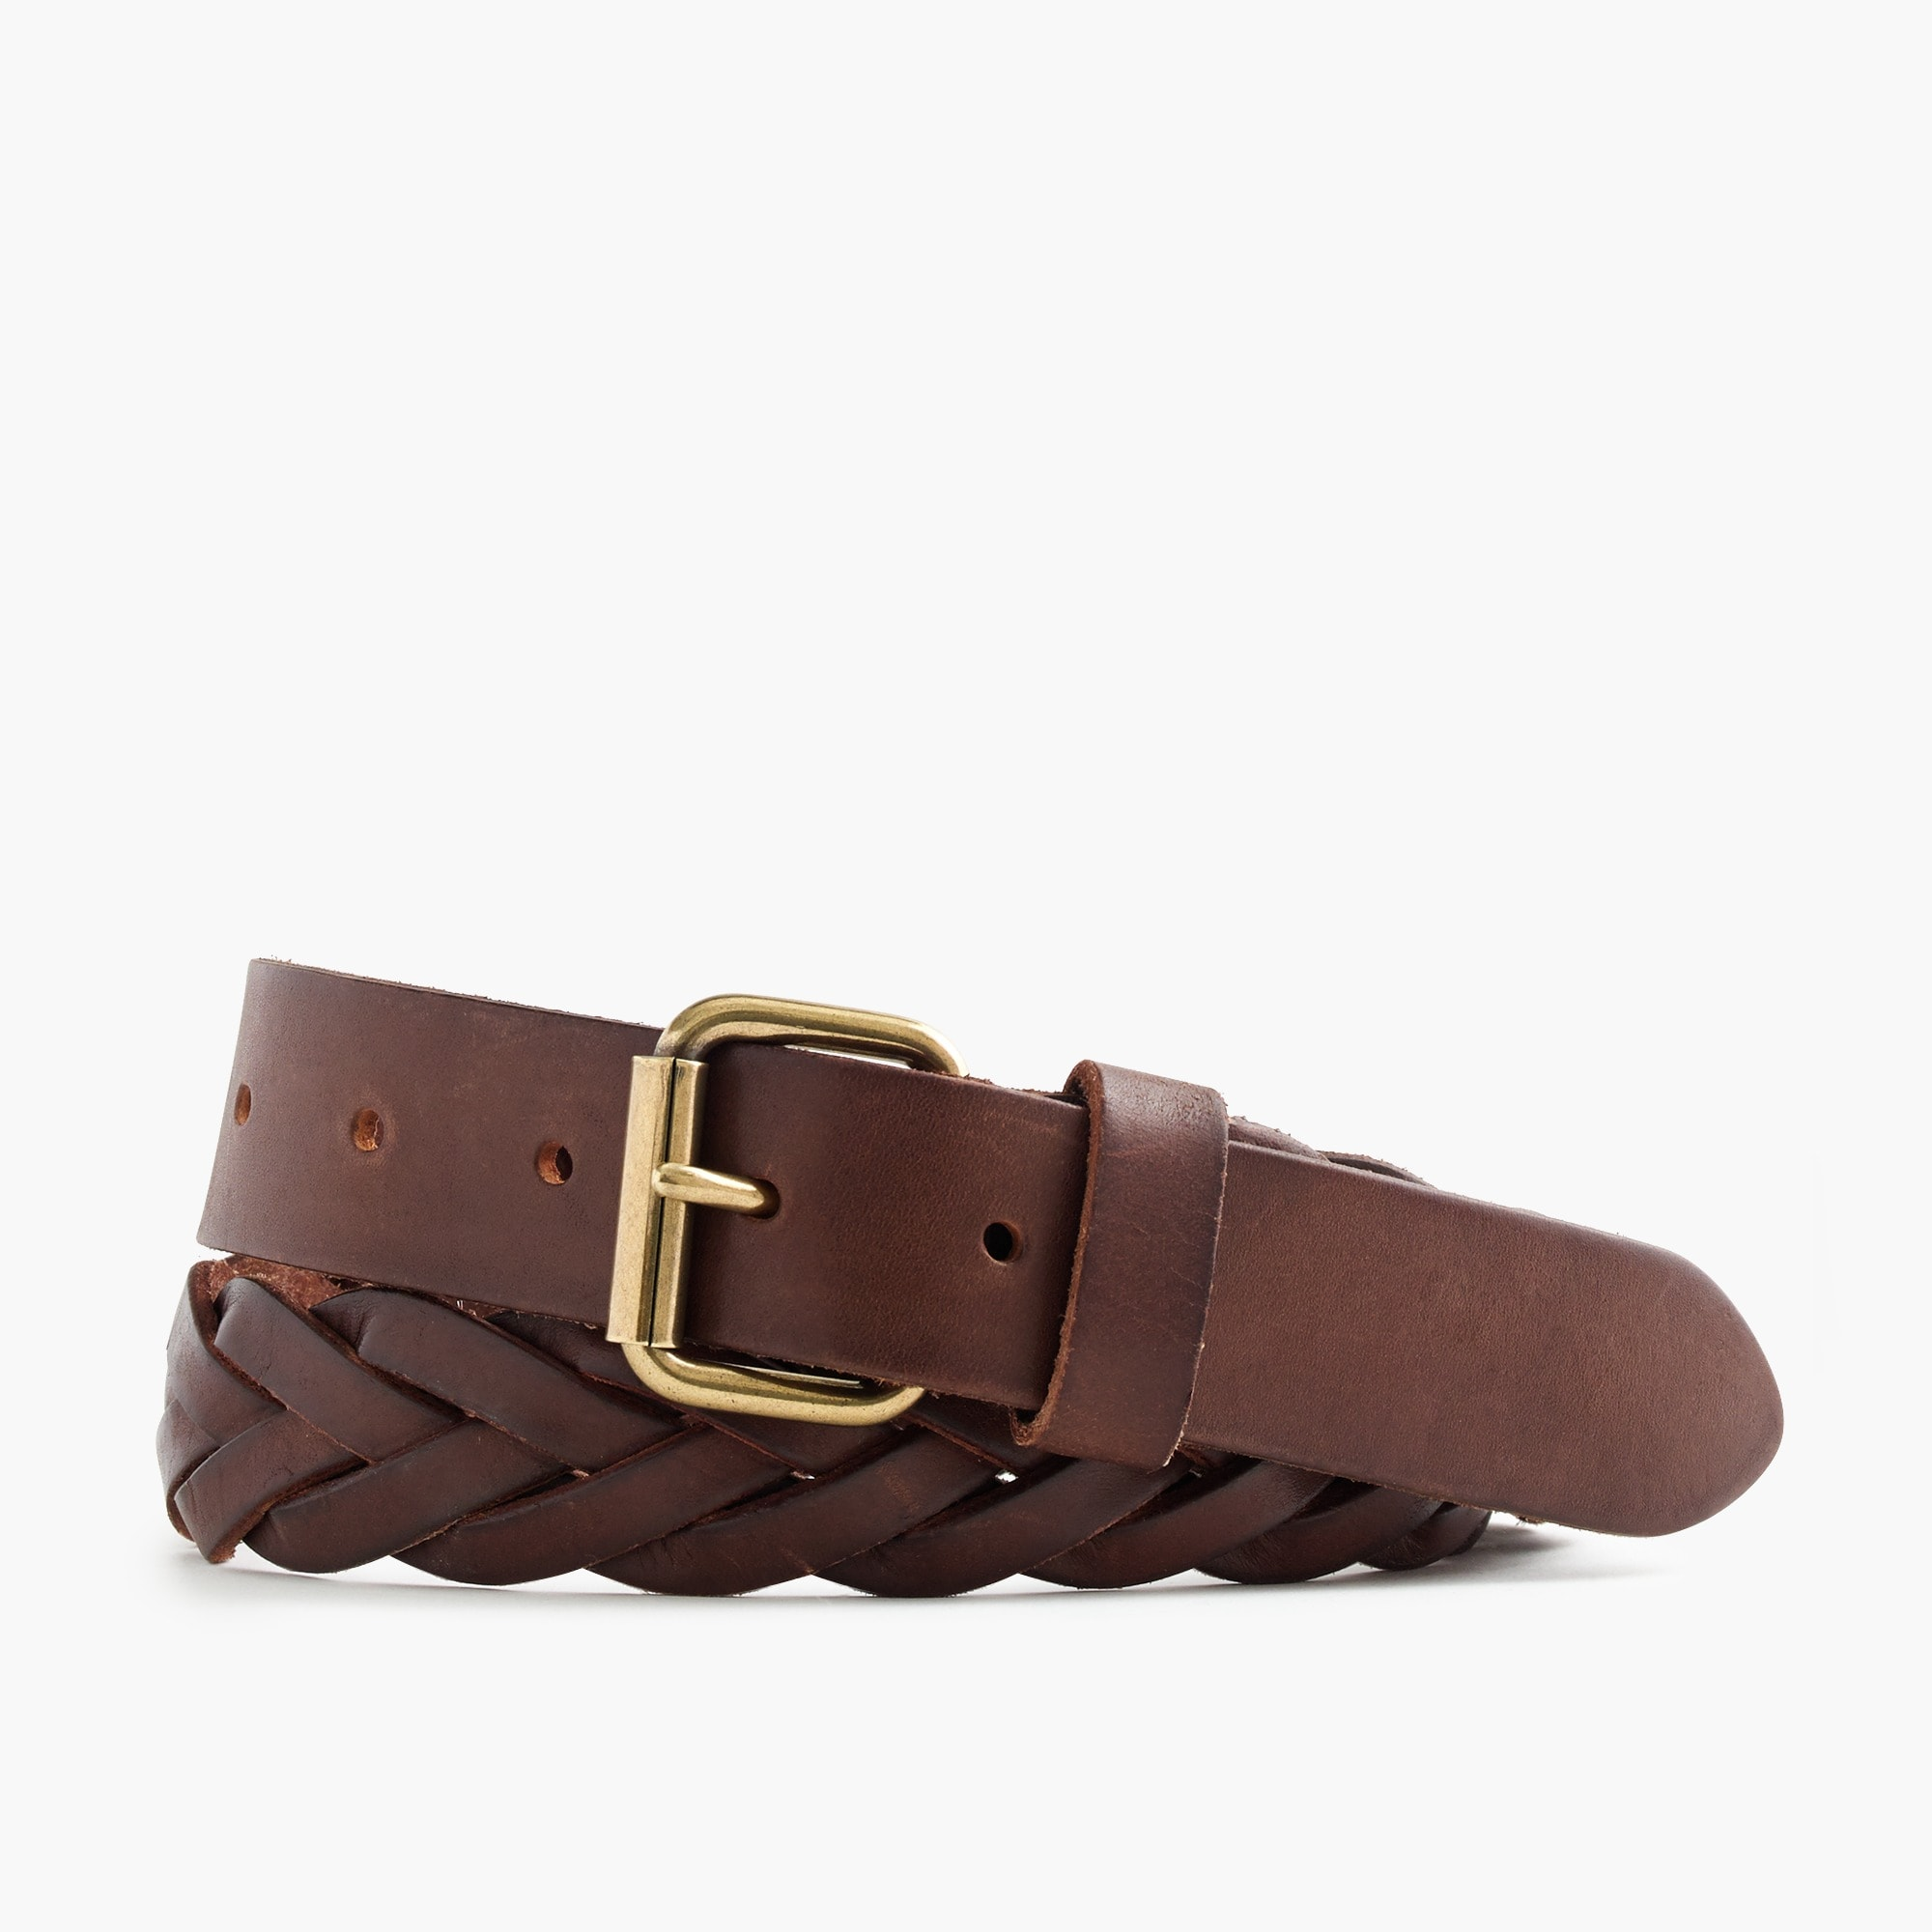 Braided leather belt men accessories c